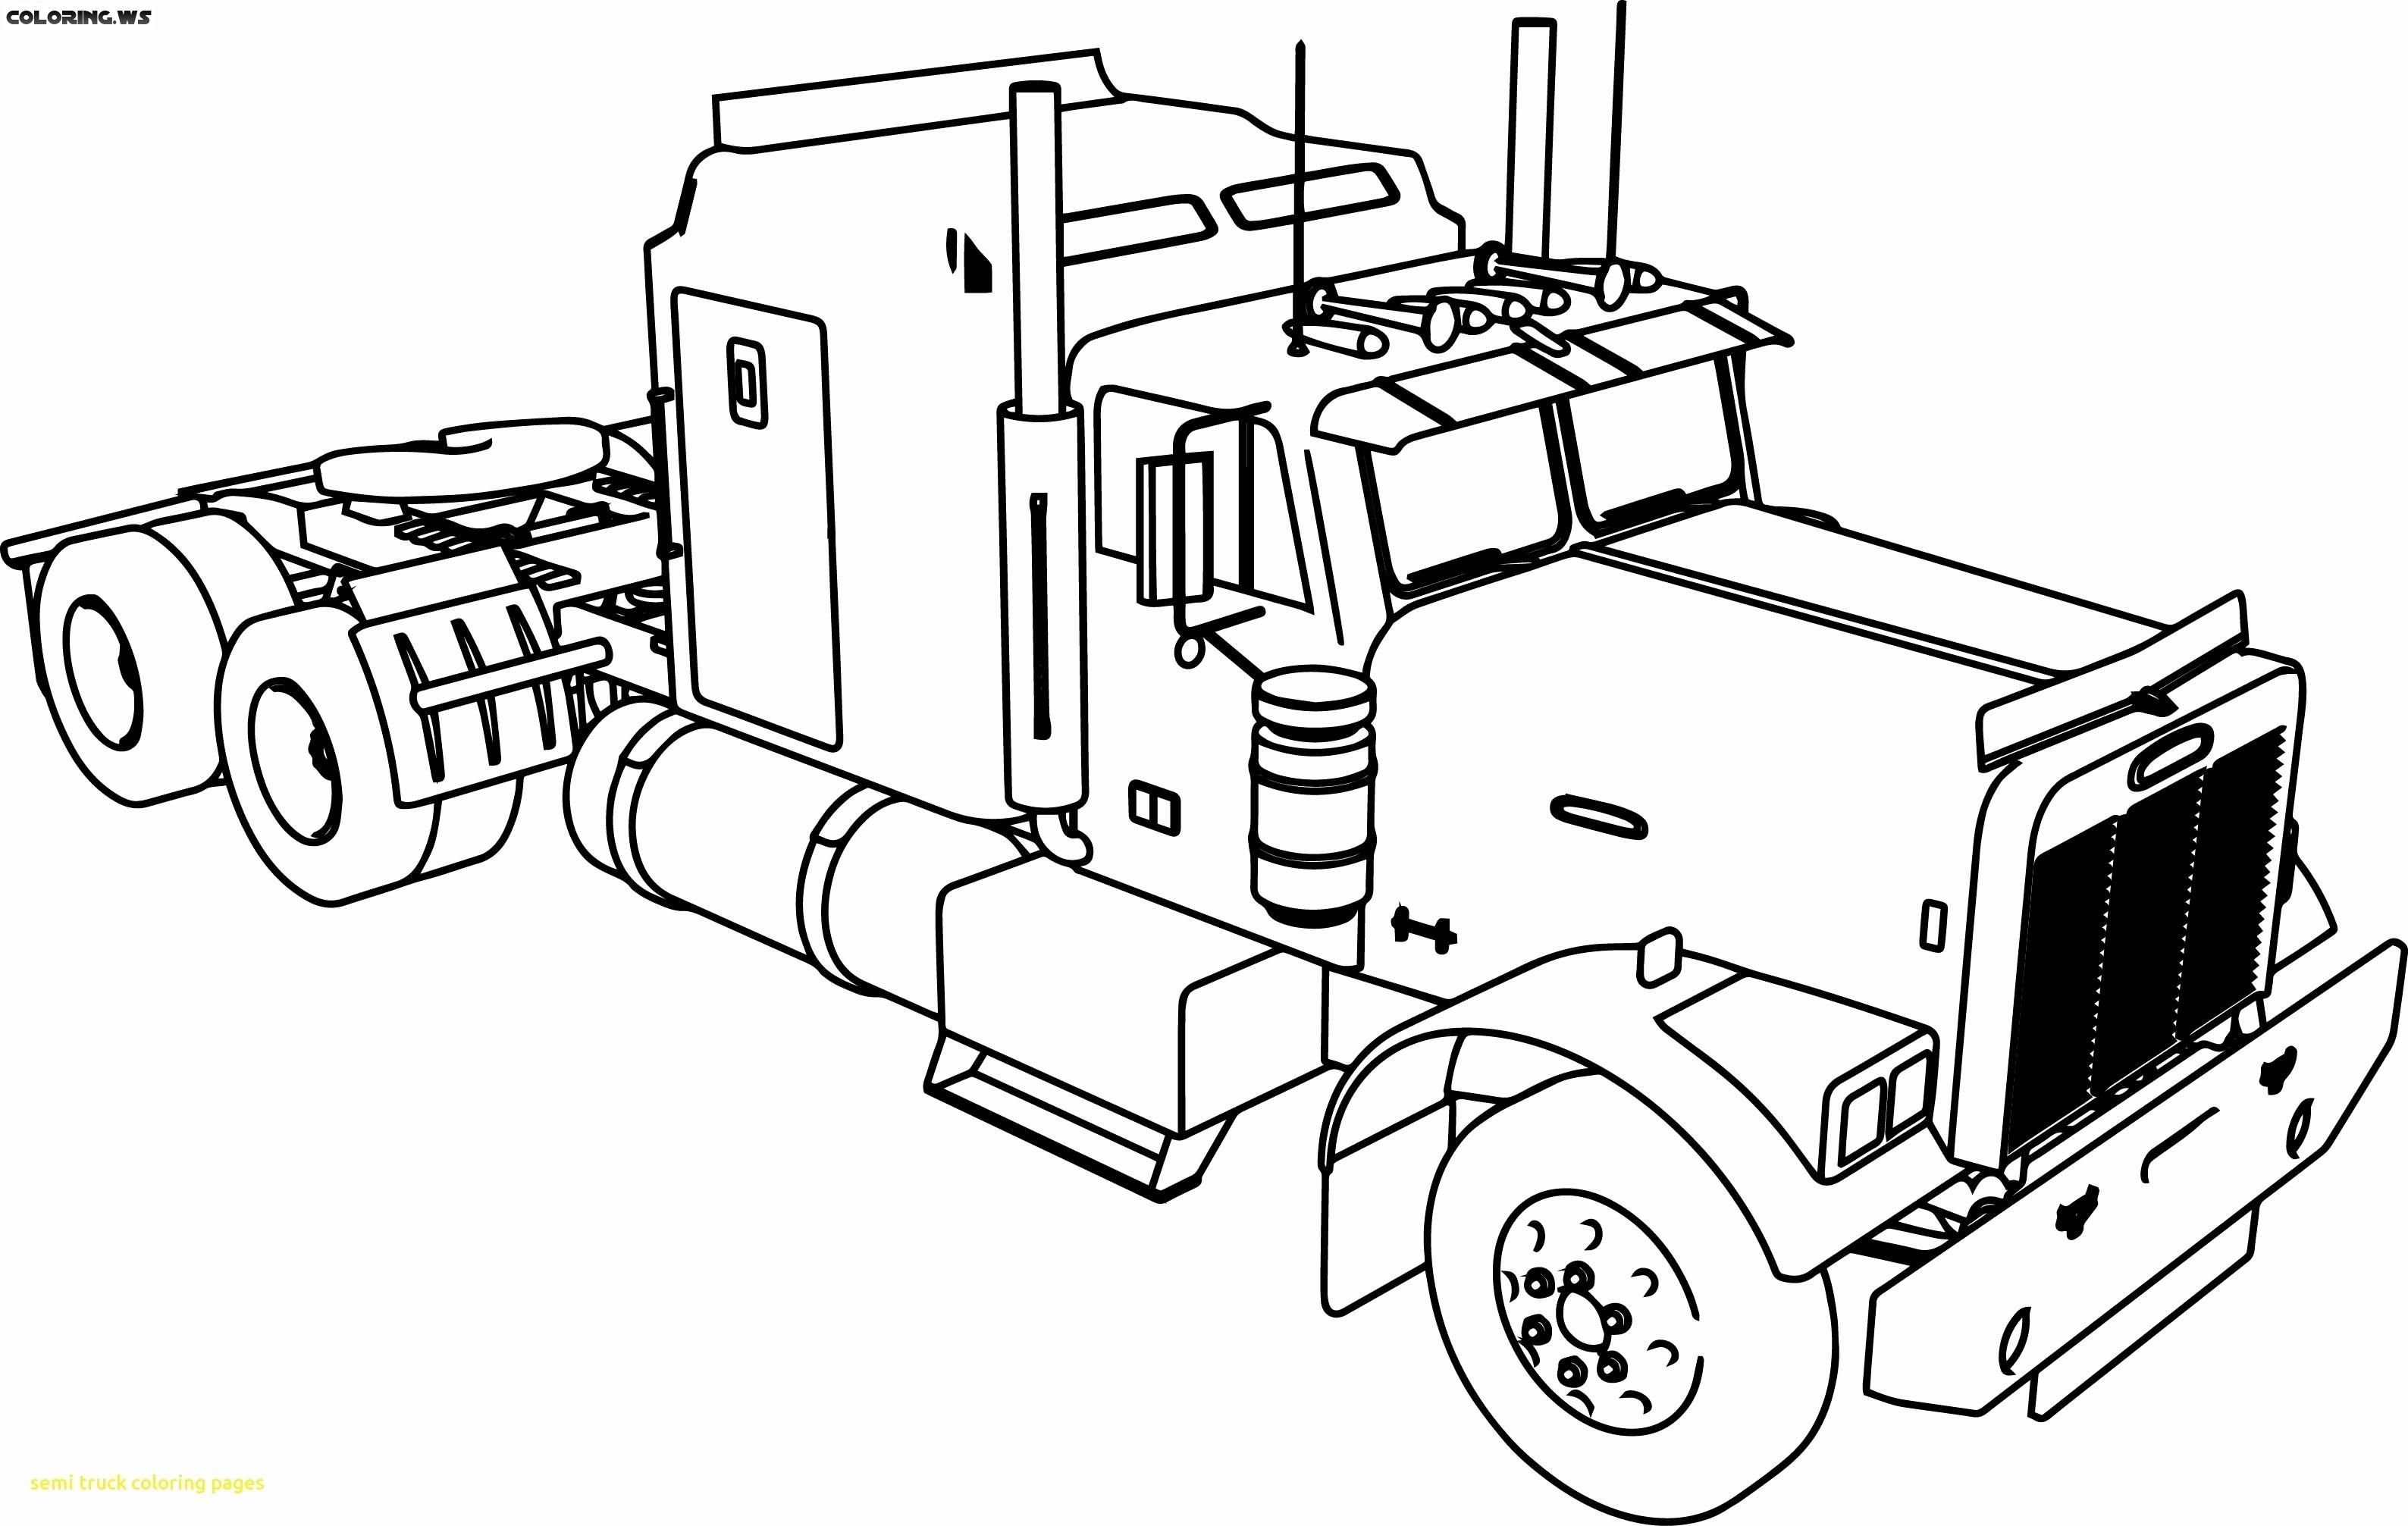 Free Truck Coloring Pages For Adults Truck Coloring Pages For Trucks There Is A Big Distin Truck Coloring Pages Tractor Coloring Pages Cars Coloring Pages